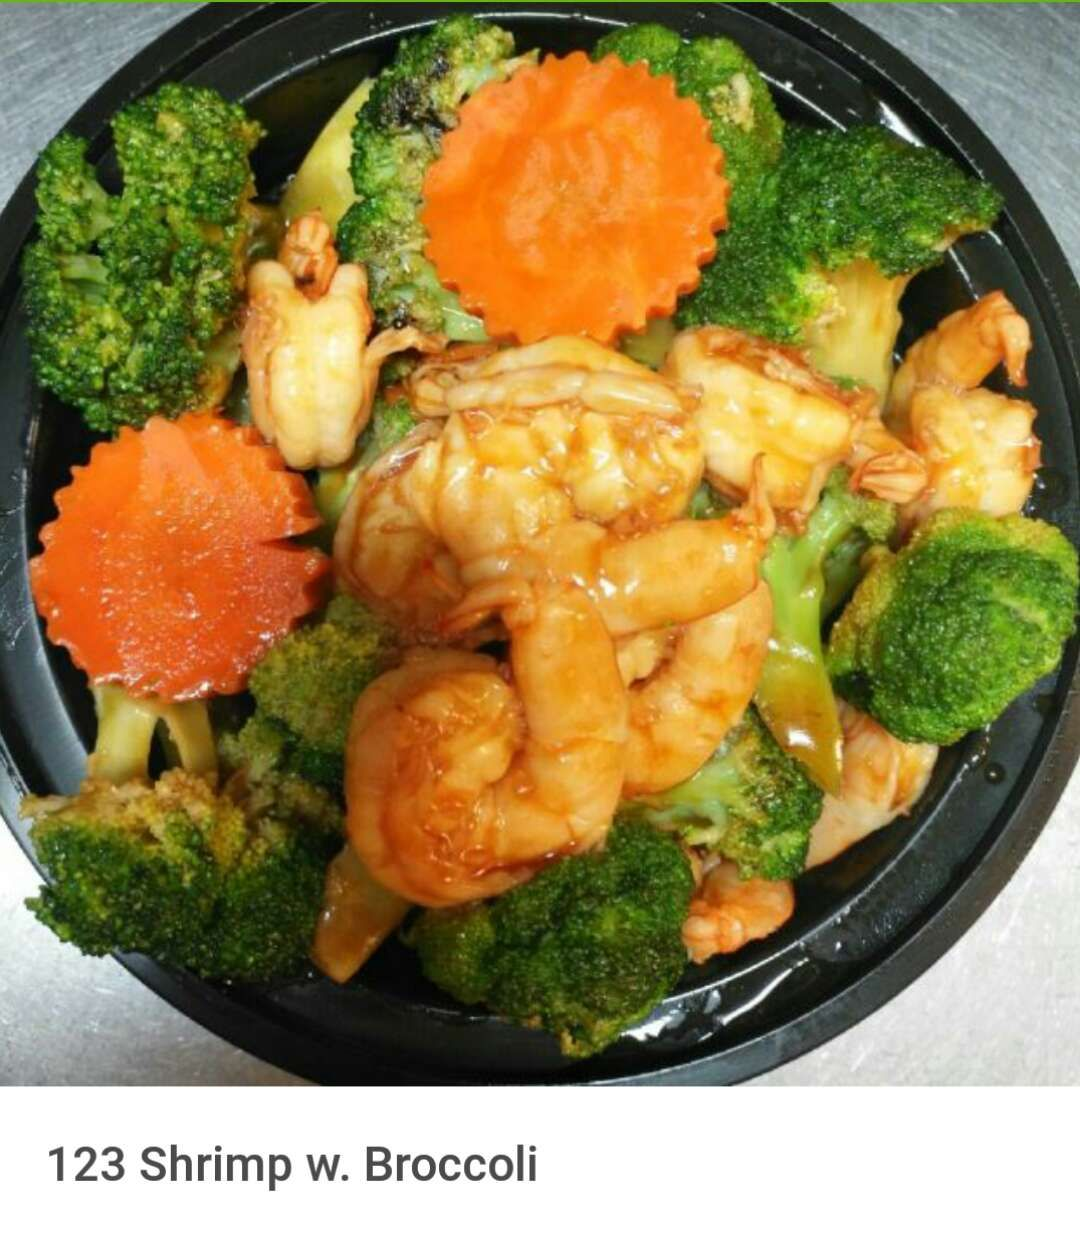 123. Shrimp w. Broccoli